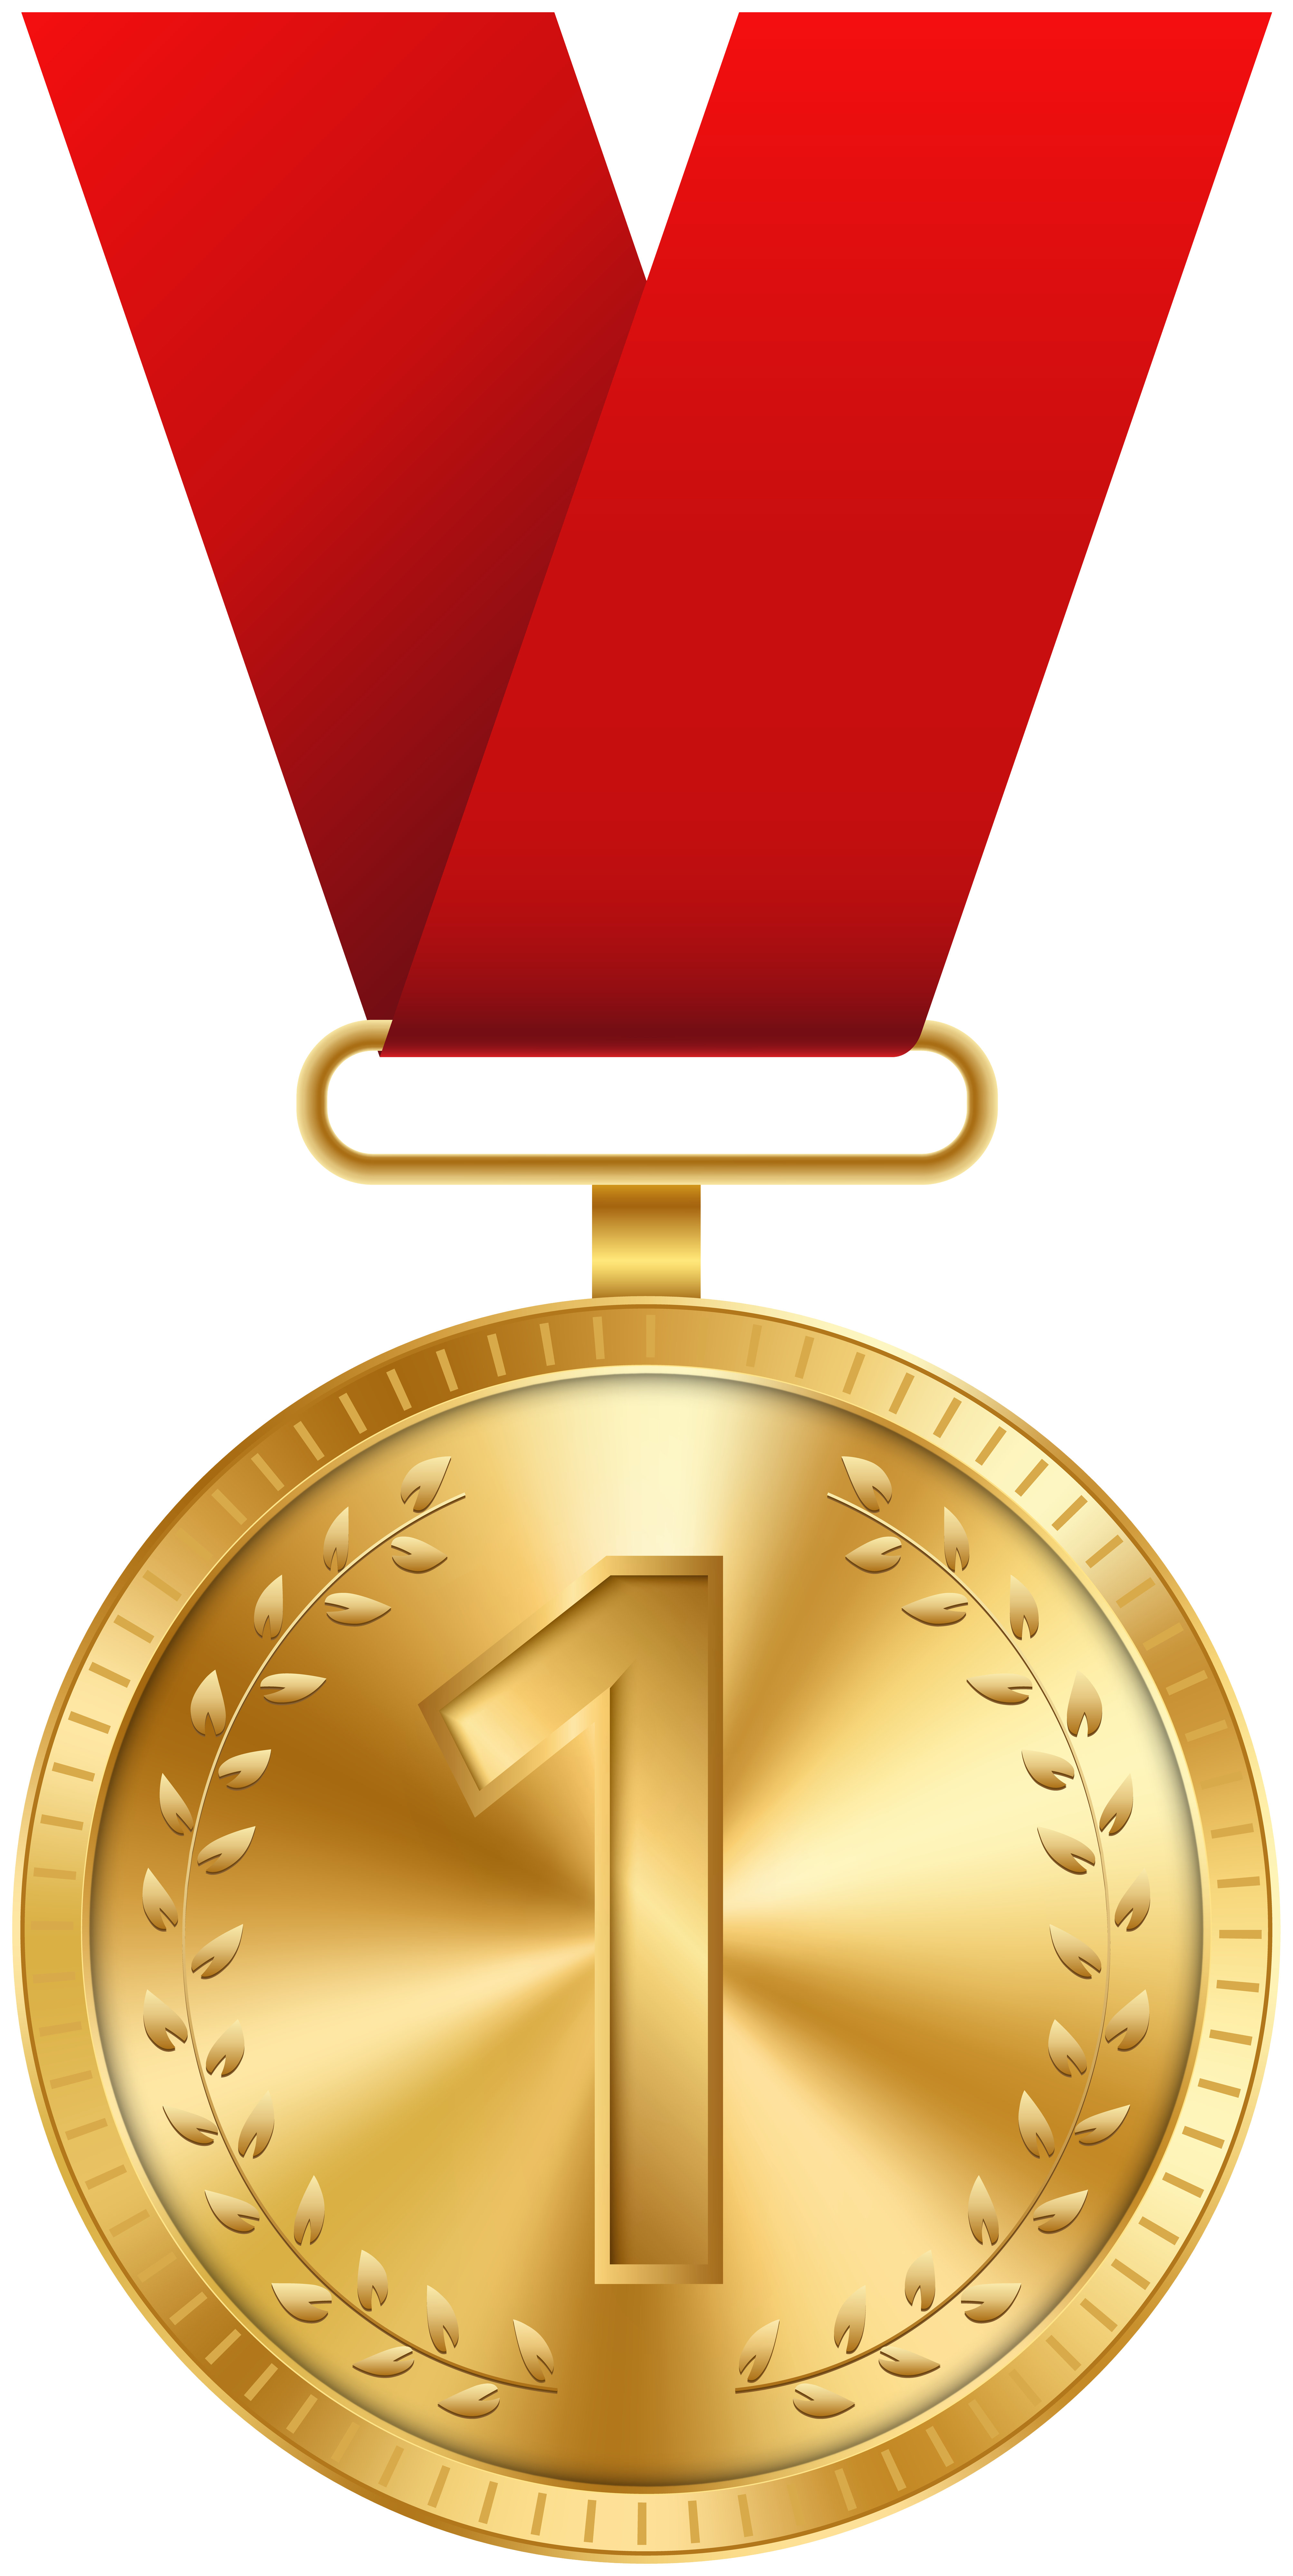 Gold medal clipart